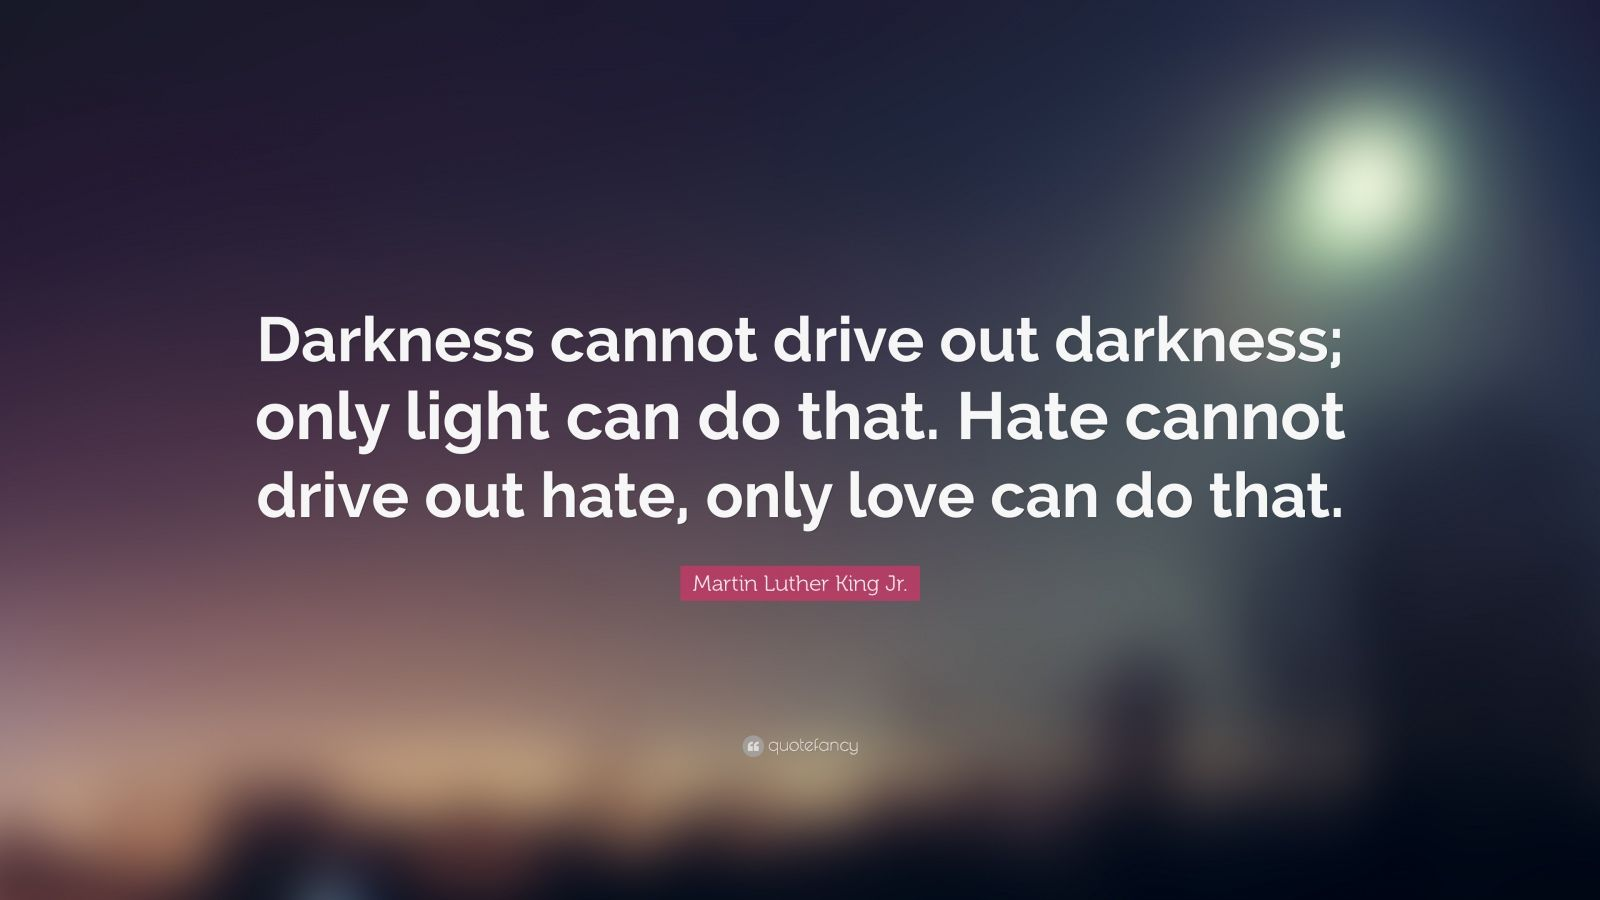 martin luther king jr quote darkness cannot drive out